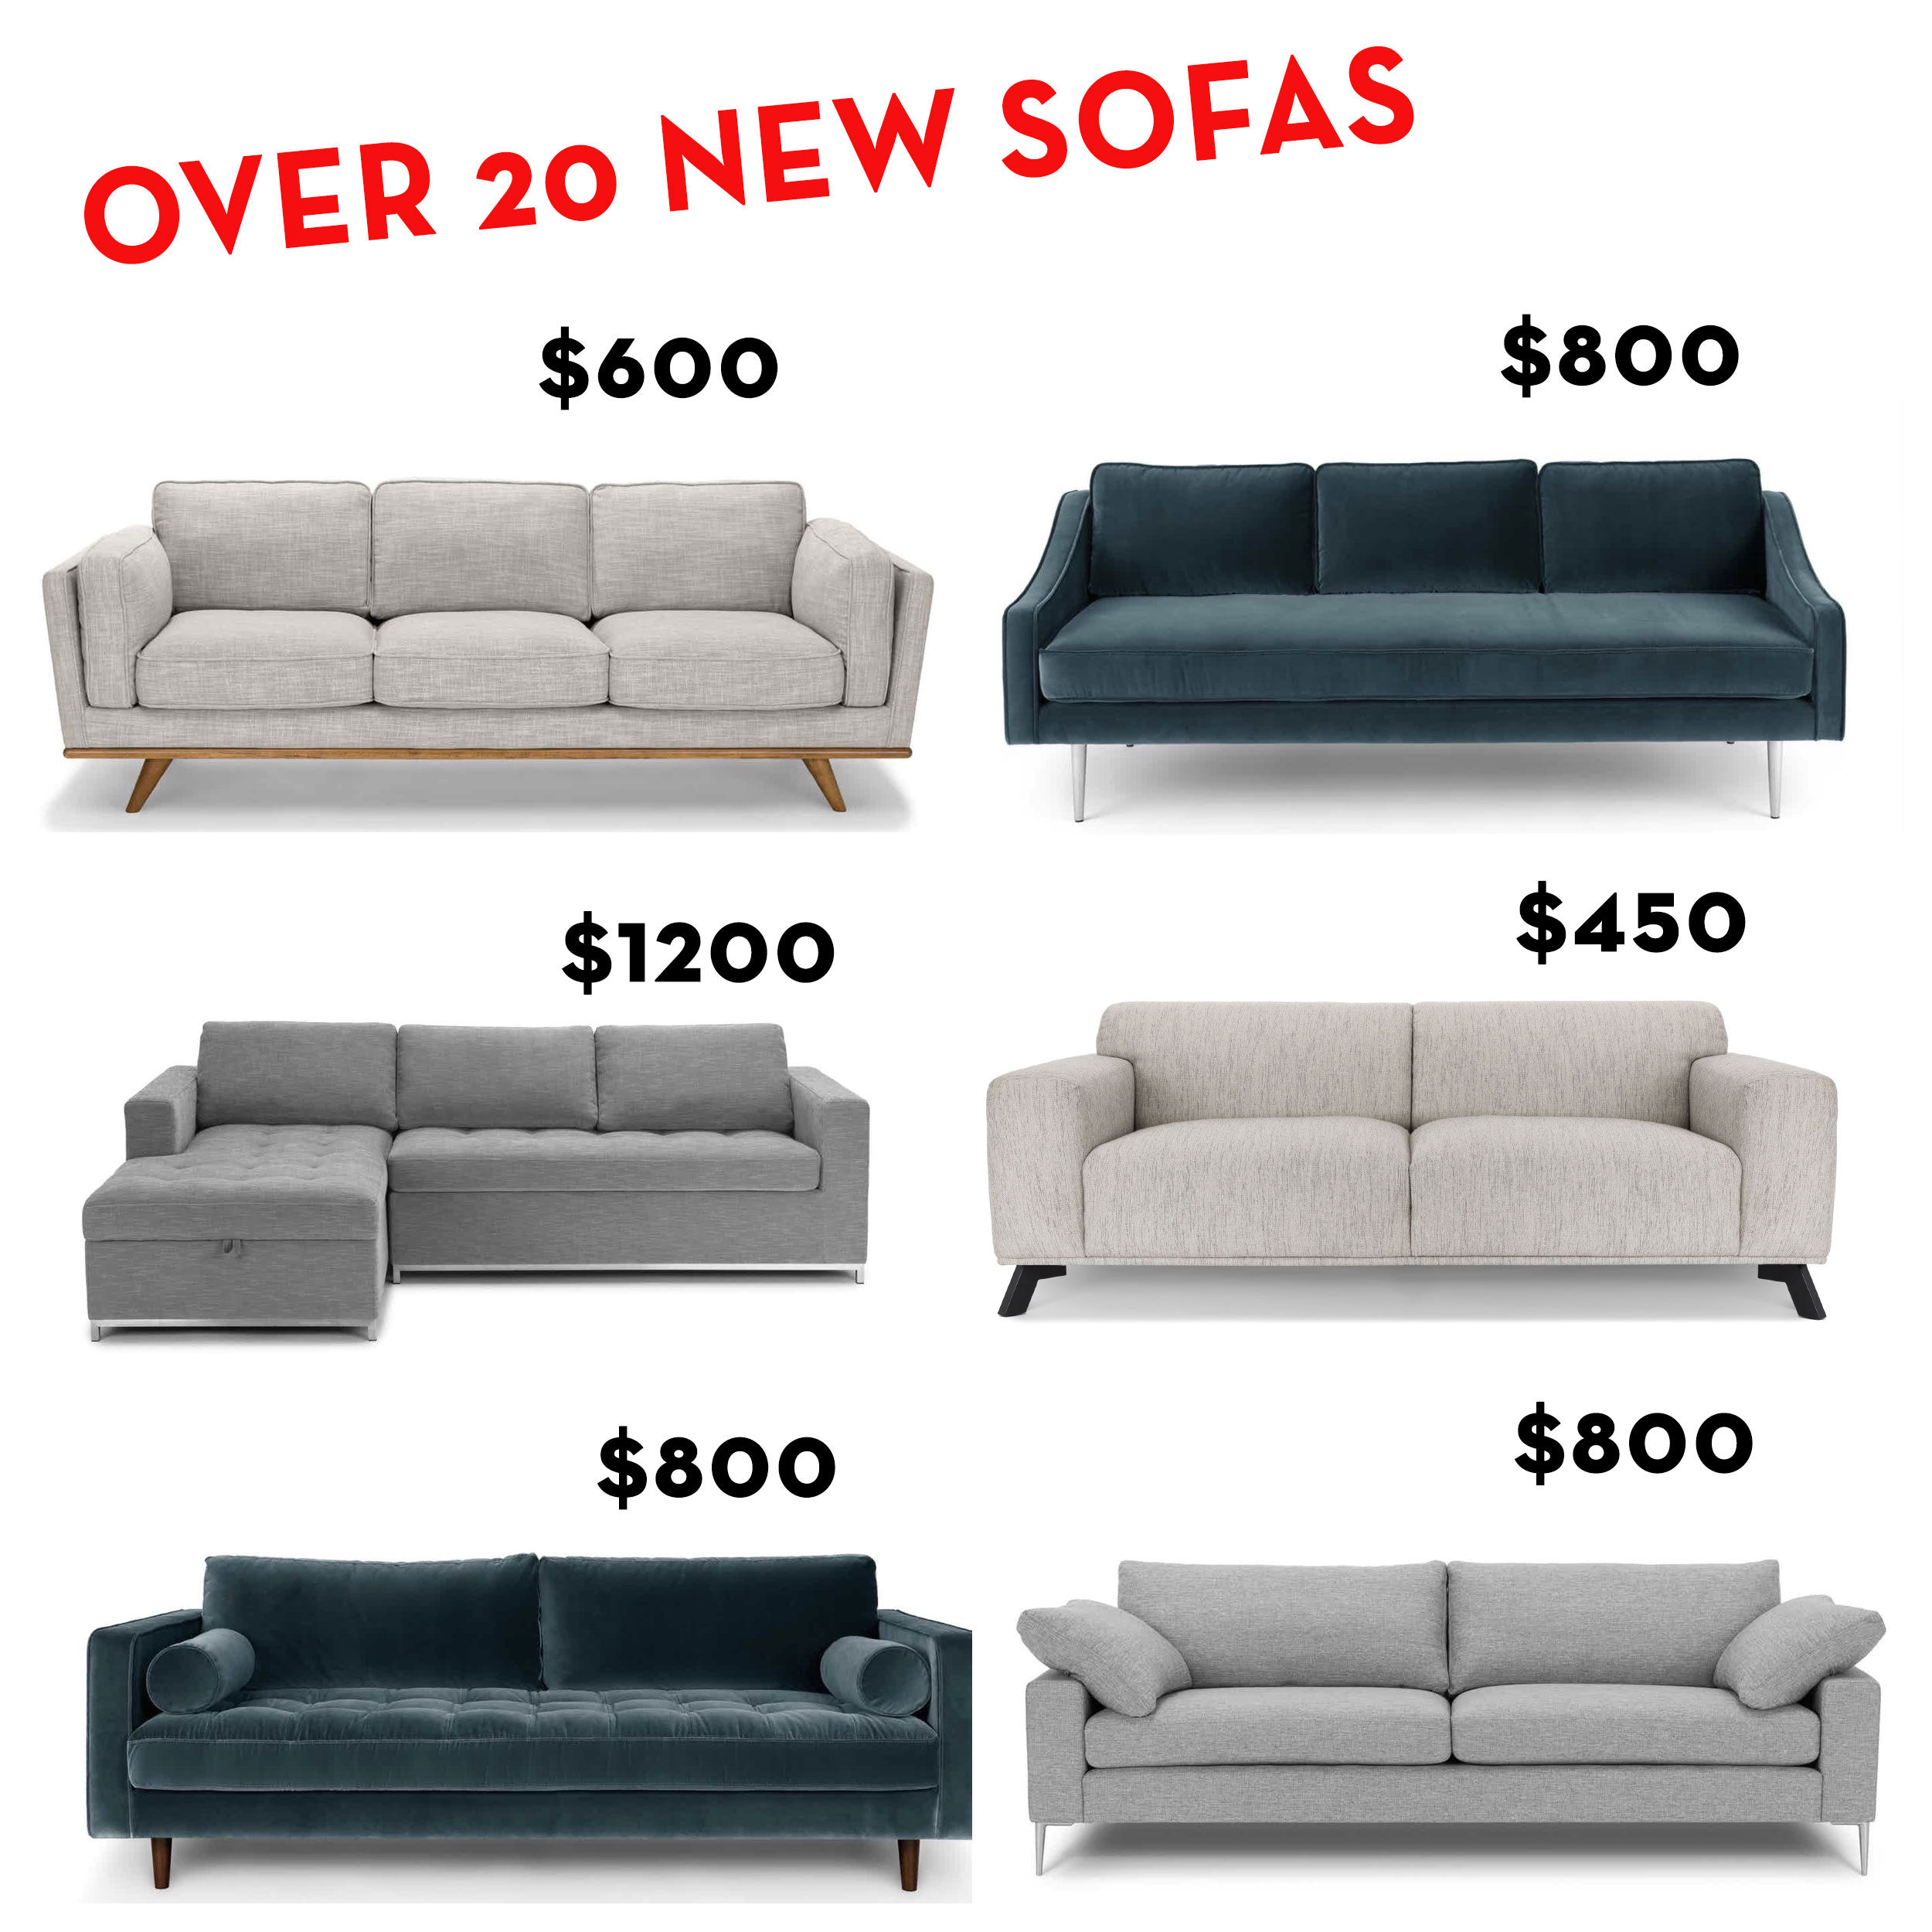 century furniture sofa quality artisan mid warehouse they are down filled with pirelli strap suspension solid wood legs and high upholstery we also have sofas